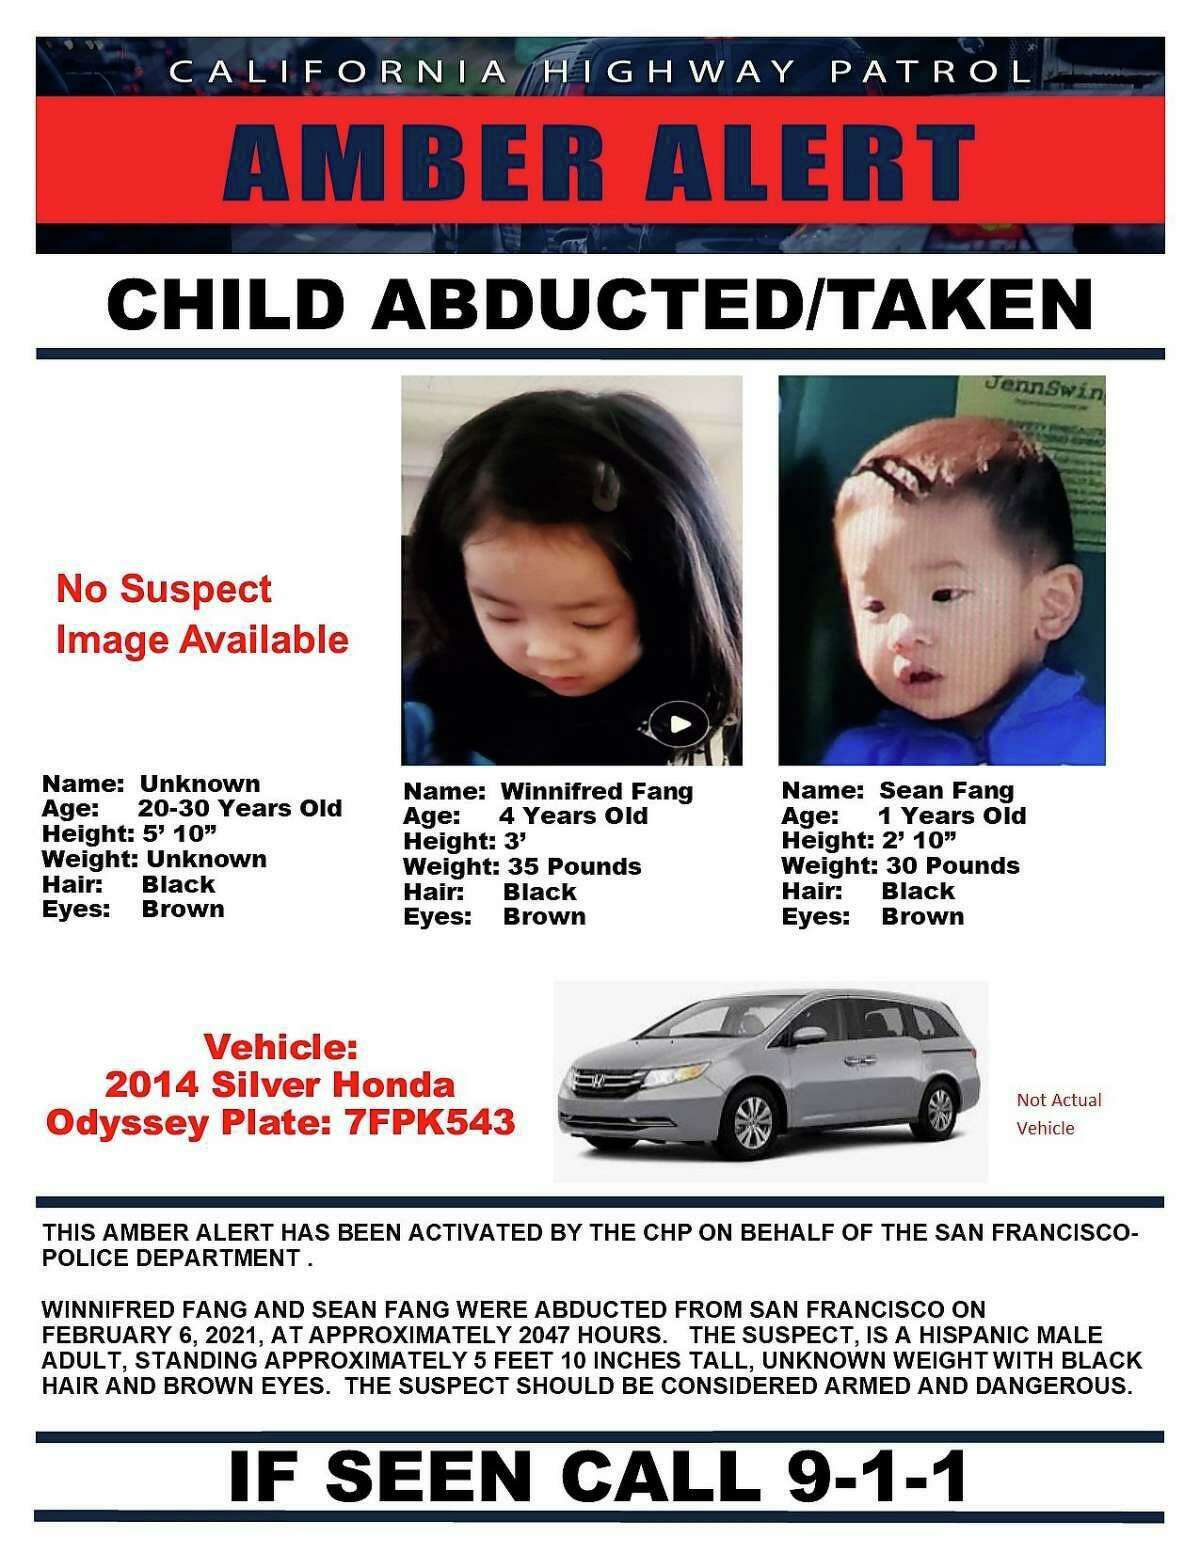 California Highway Patrol issued an Amber Alert for two children, Winnifred Fang, age 4 and Sean Fang, age 1, who were abducted in a San Francisco carjacking Saturday night.